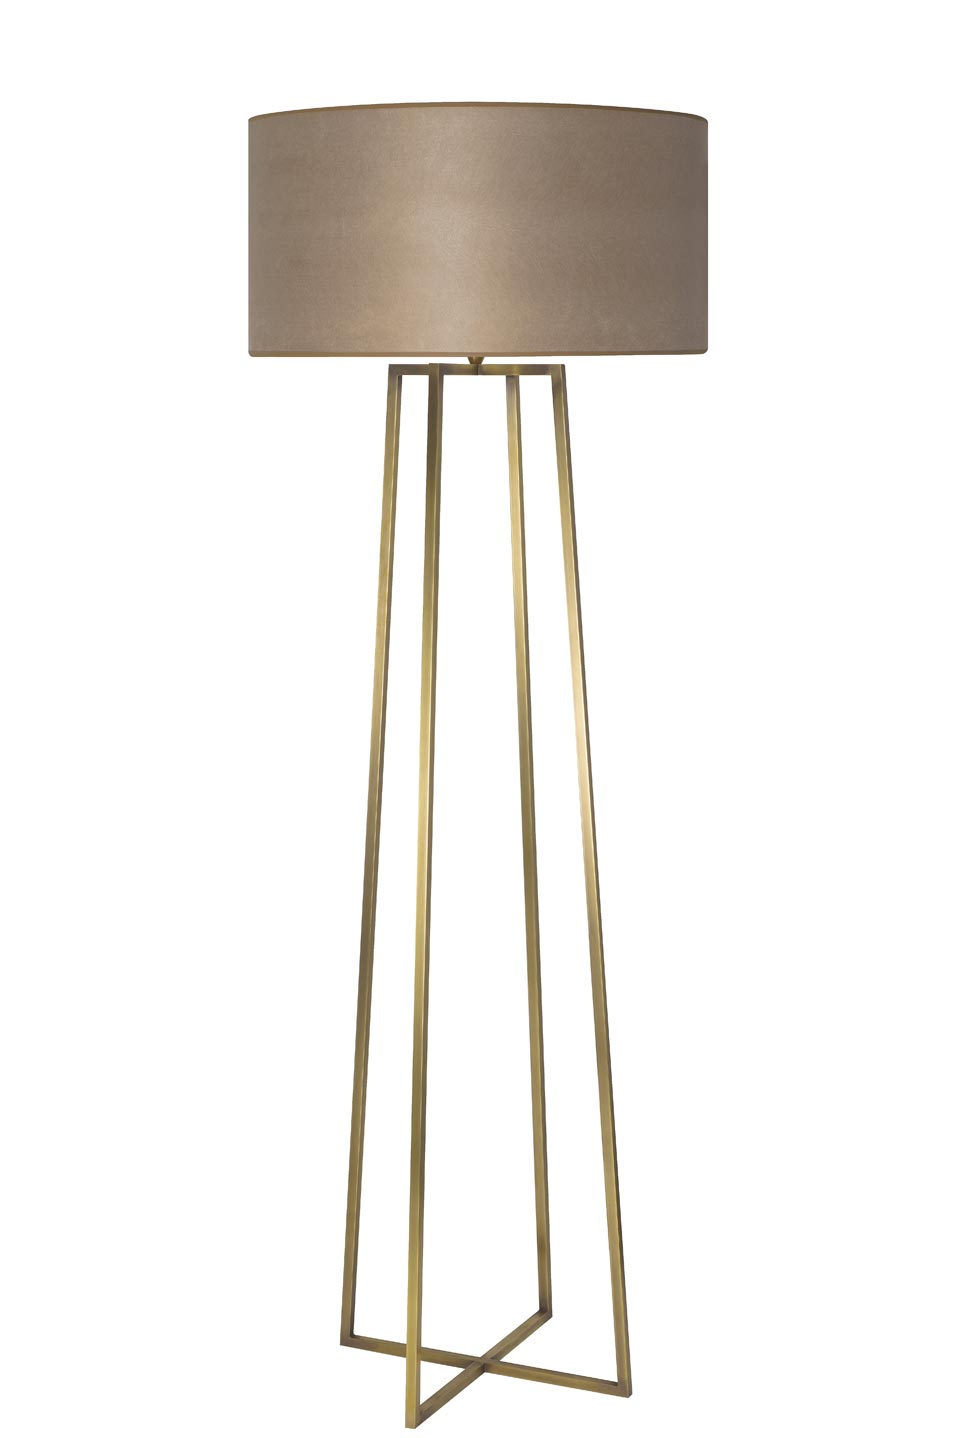 Large Floor Lamp Four Connected Feet In Br Ld76 Casadisagne